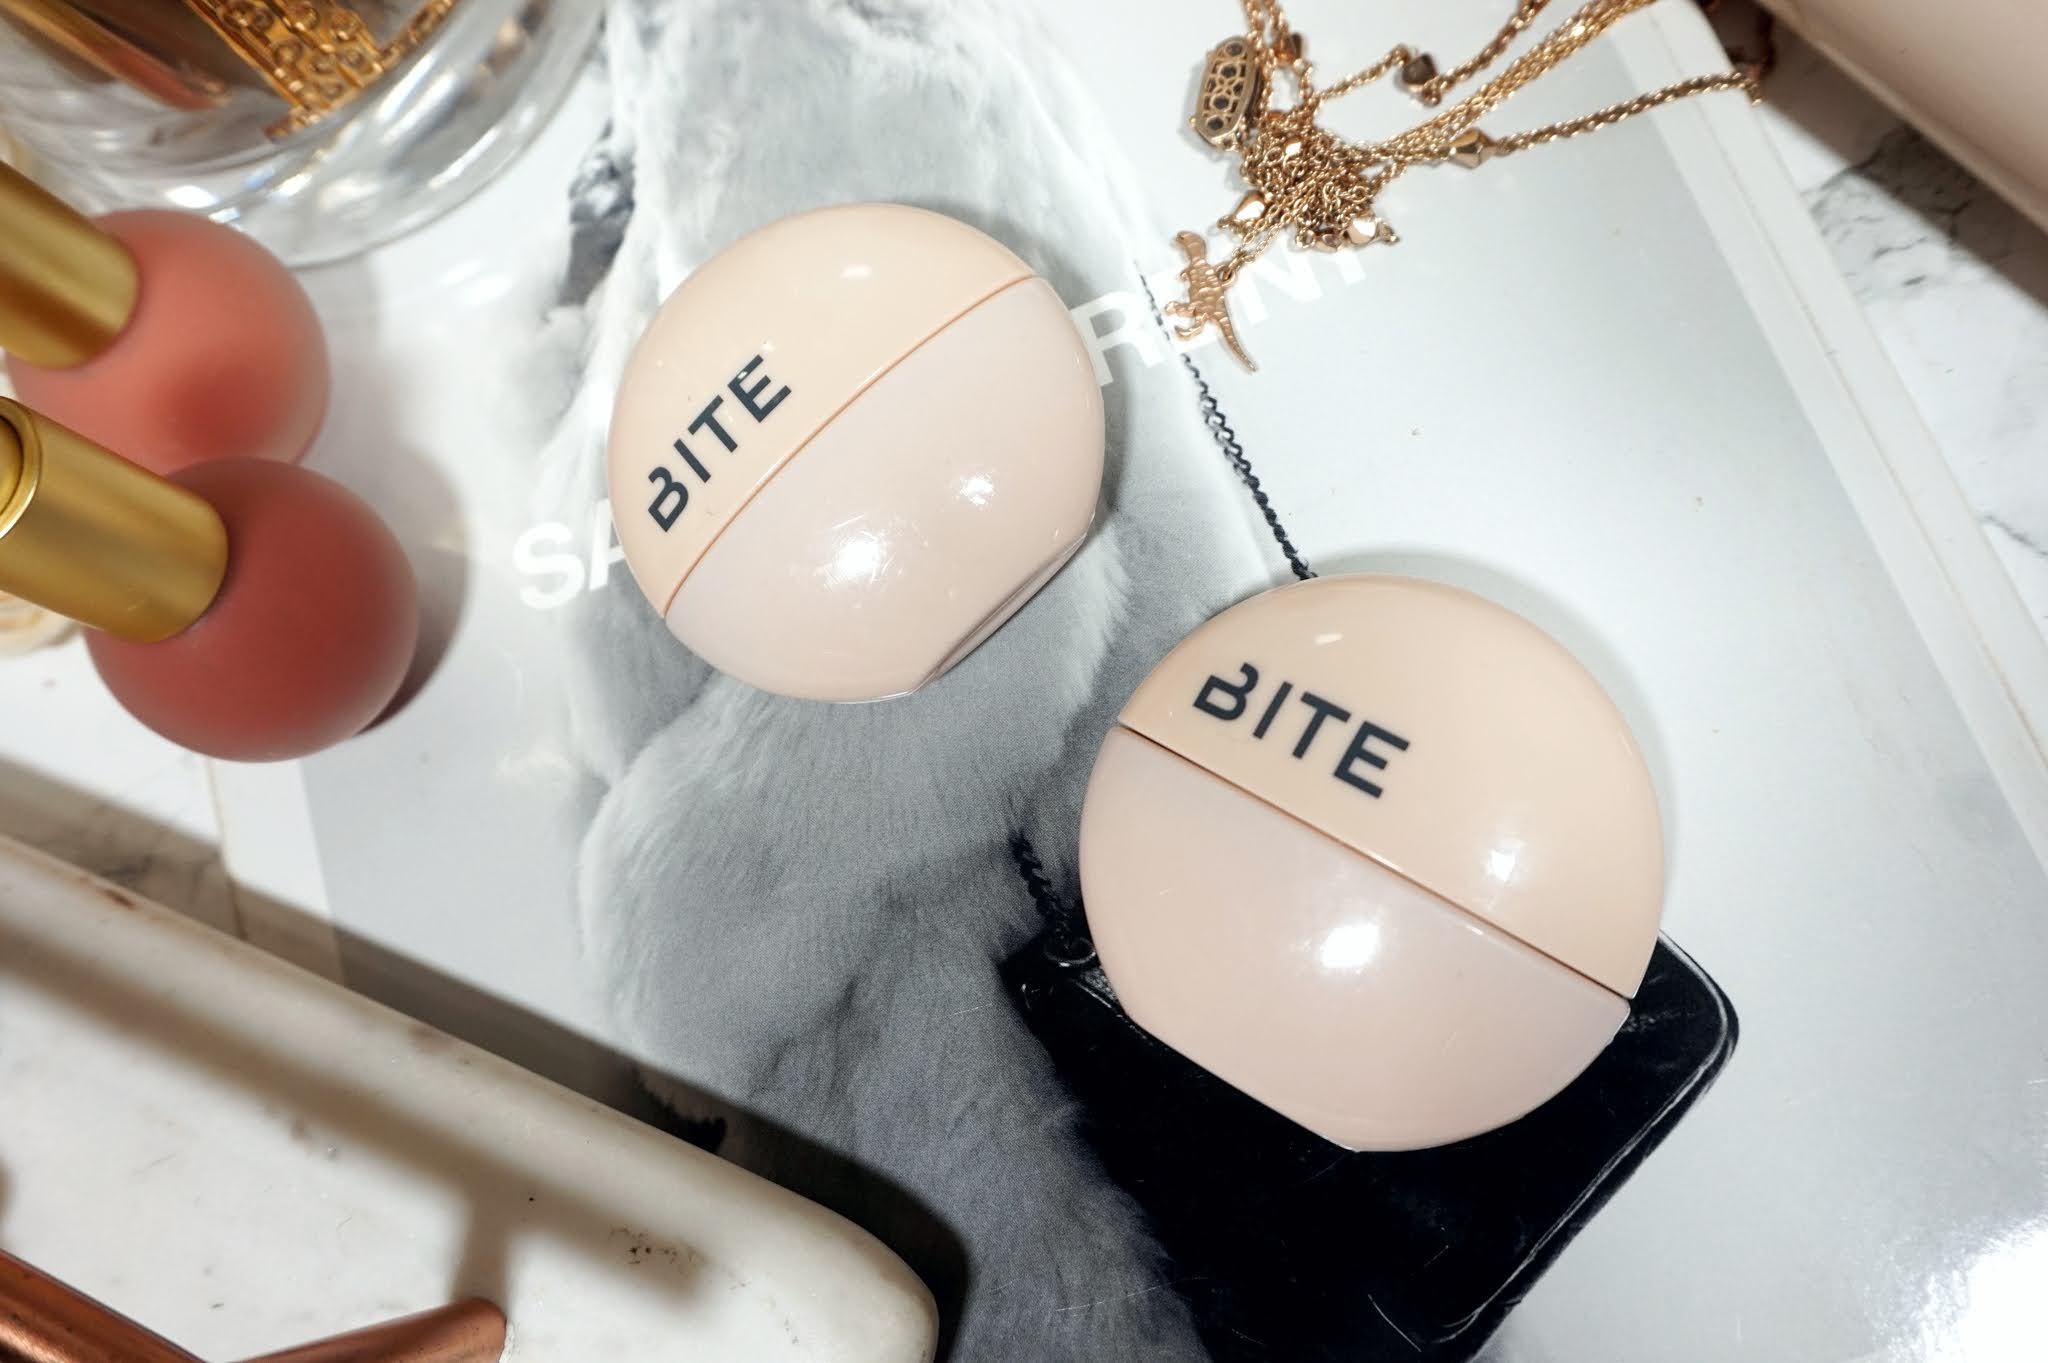 Bite Beauty Daycation Whipped Cream Blush Review and Swatches